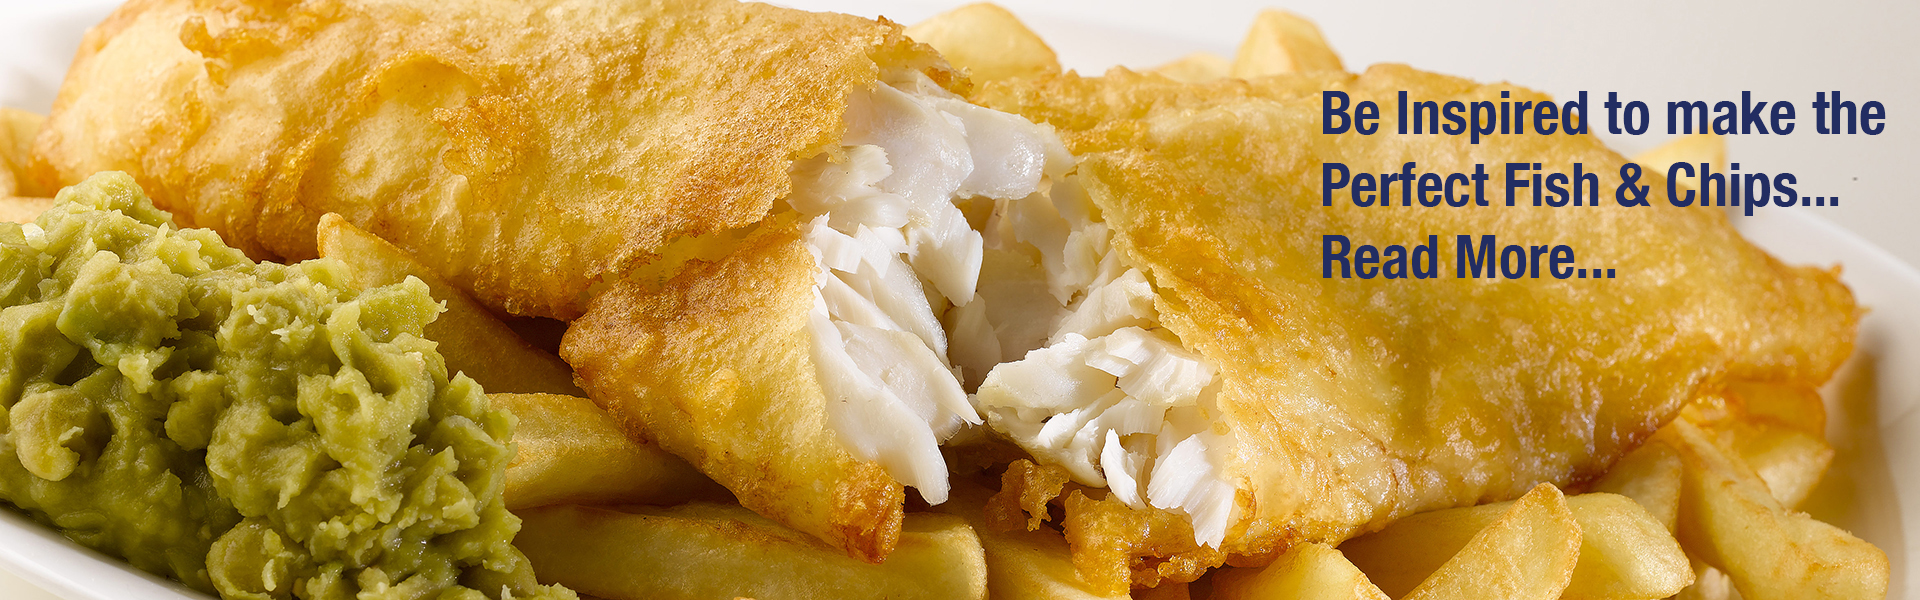 Be Inspired to Make the Perfect Fish & Chips